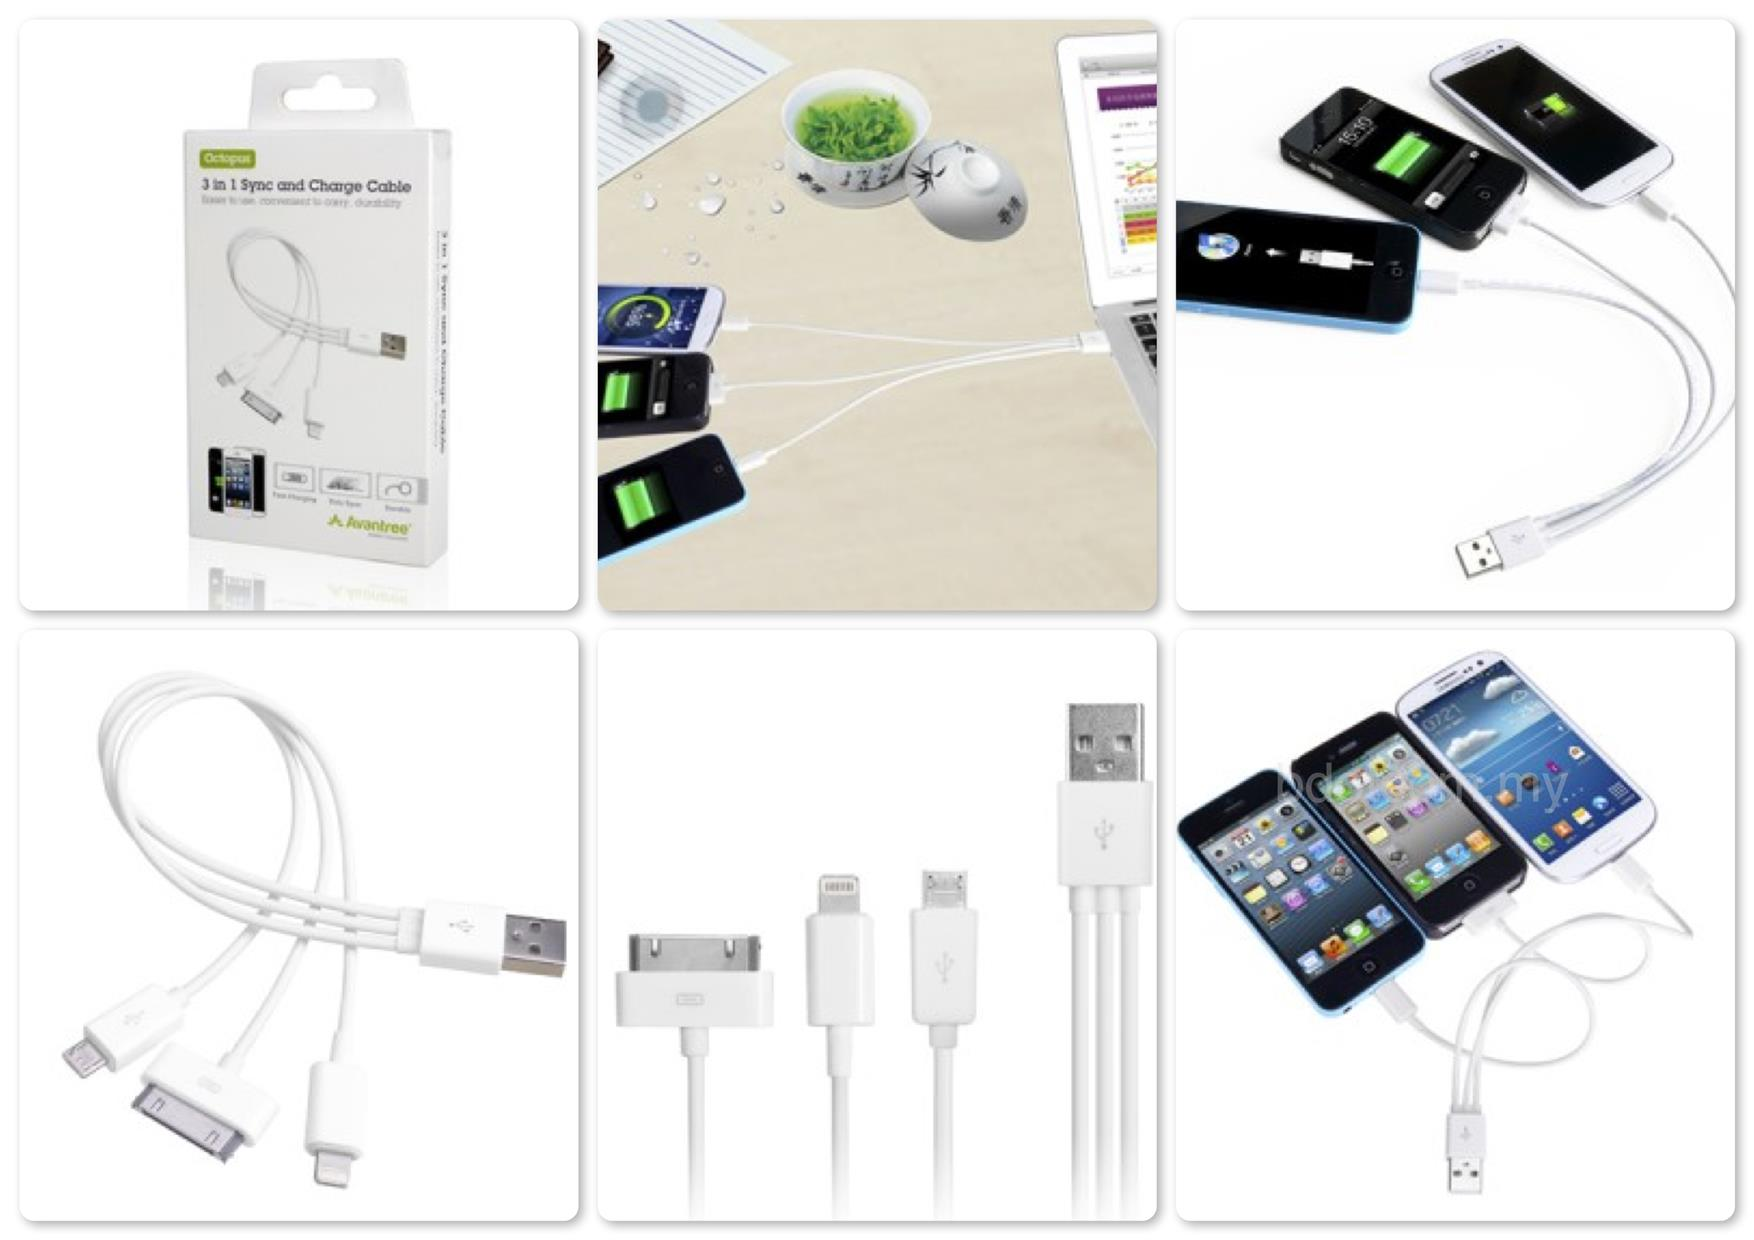 Bdotcom = Avantree 3 in 1 Sync and Charge Cable - Octopus